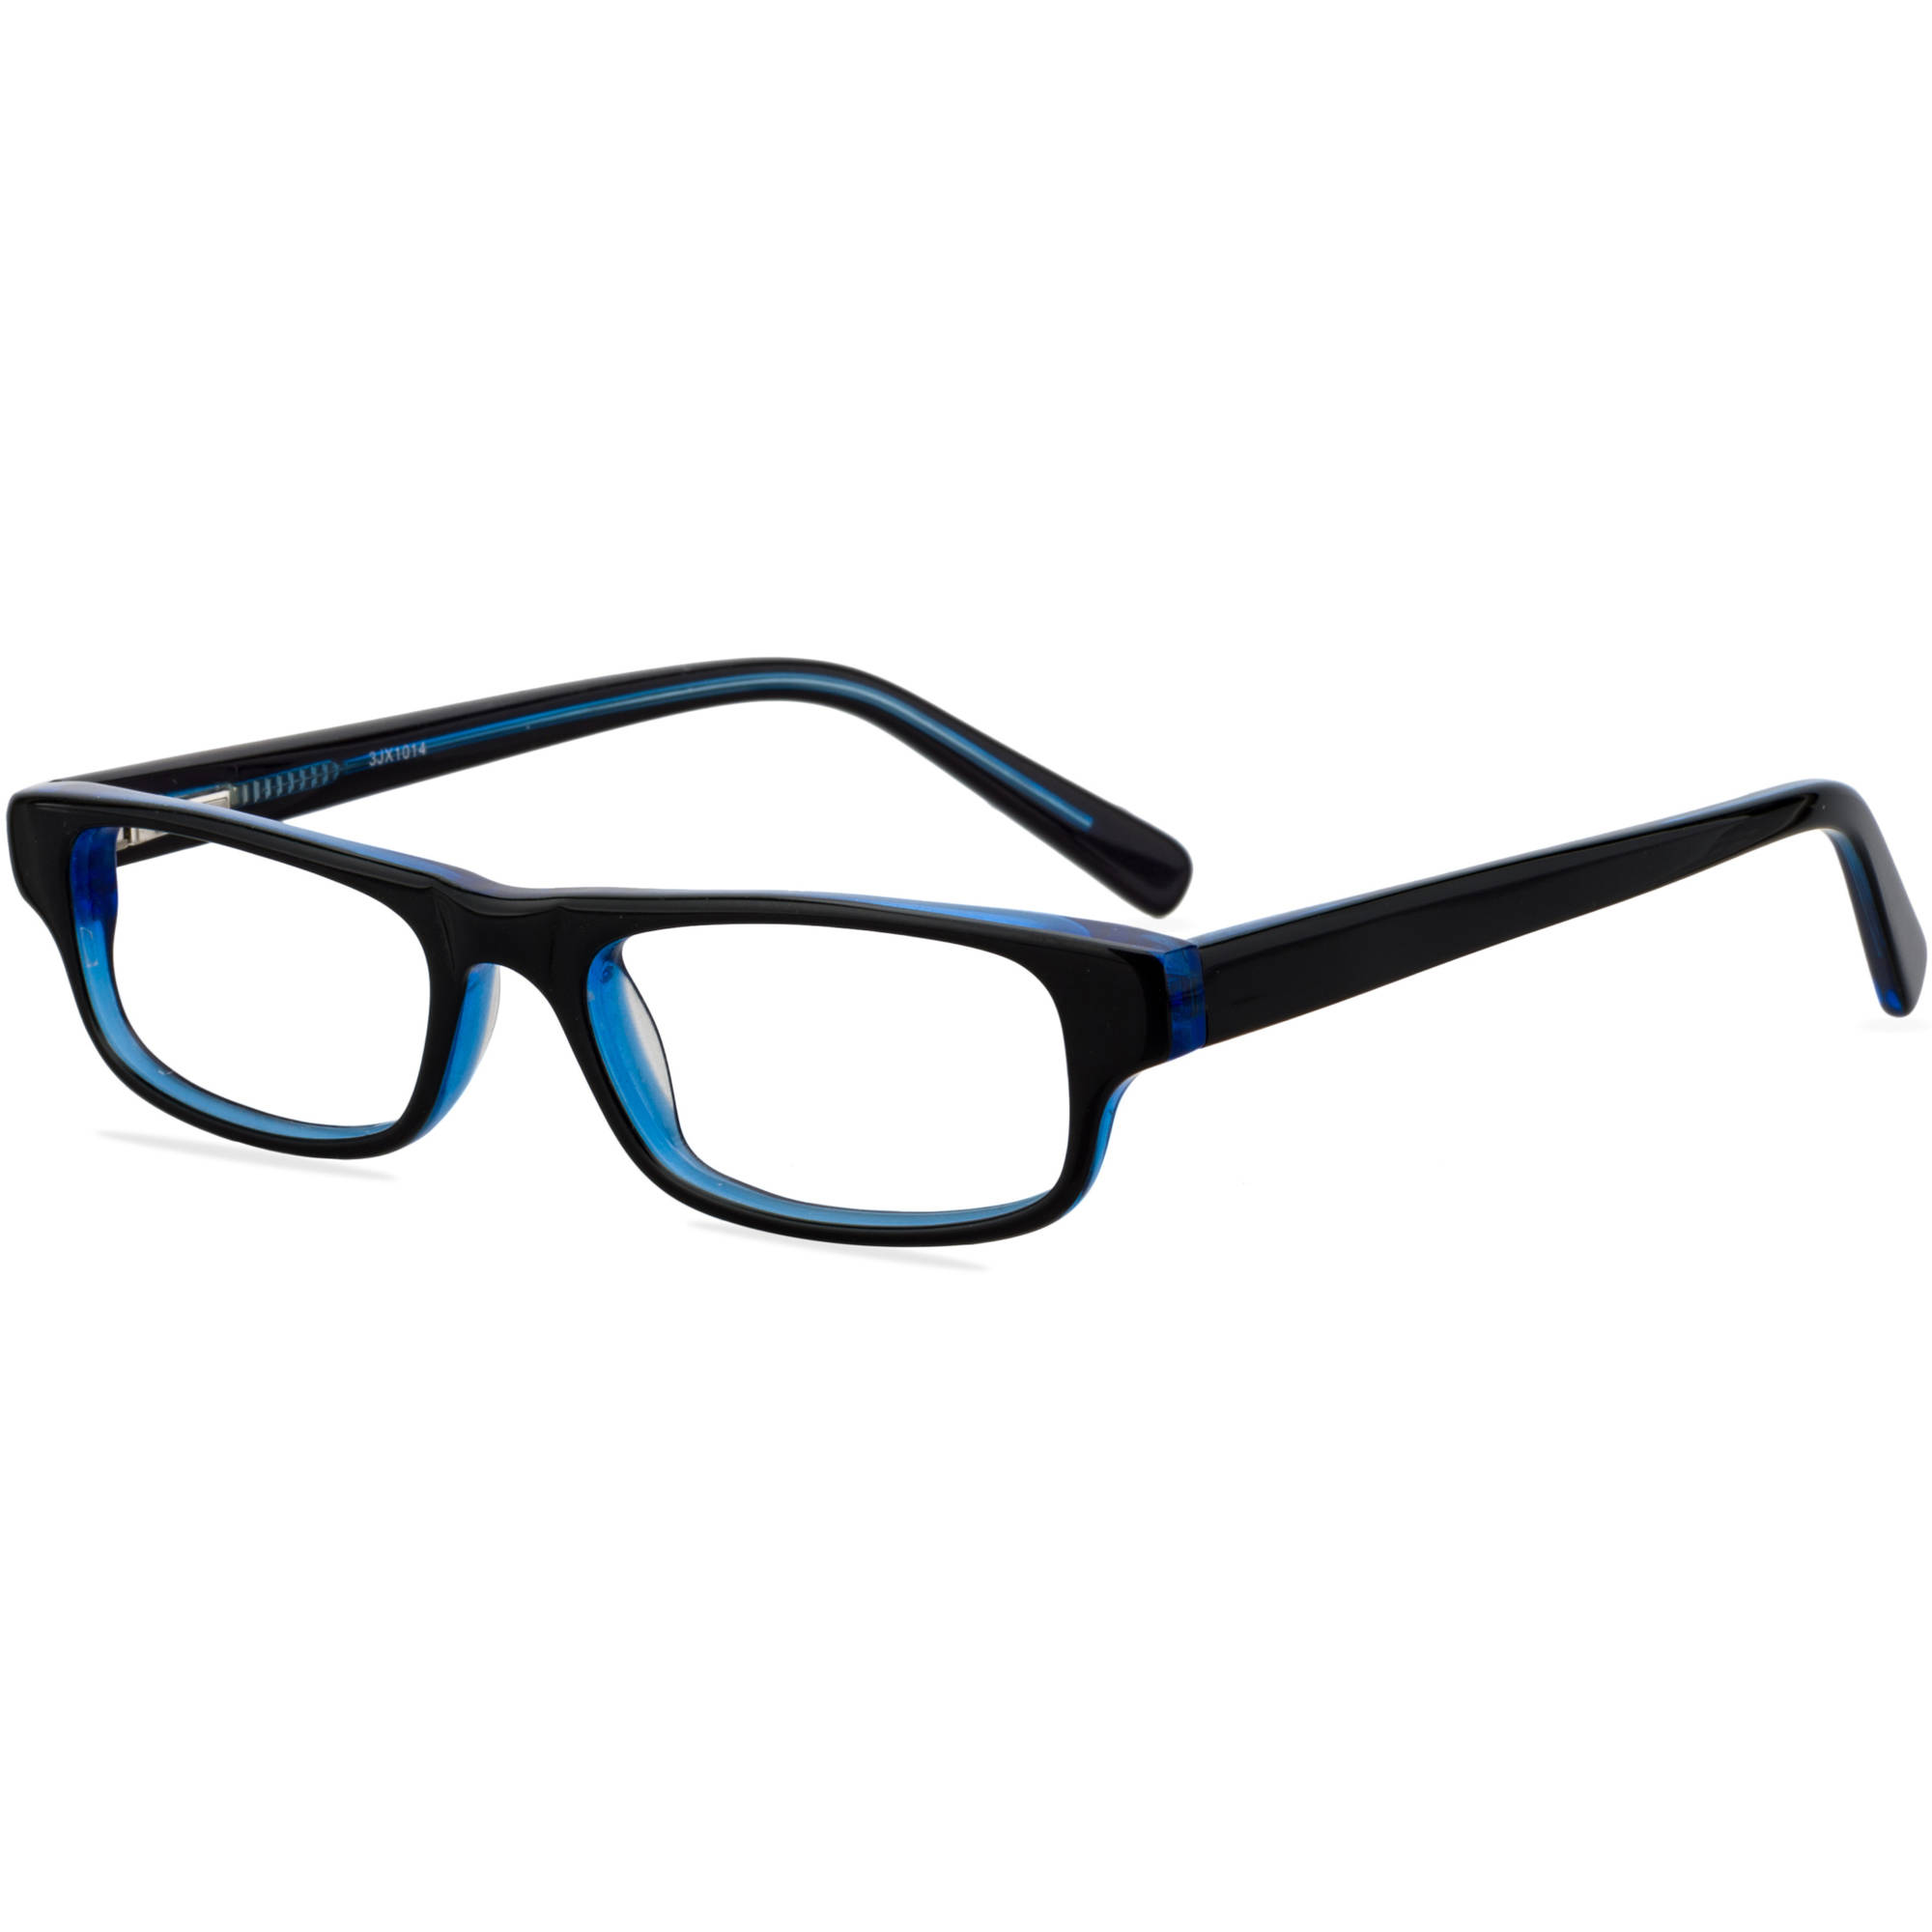 Contour Youths Prescription Glasses, FM14043 Black/Blue - Walmart.com